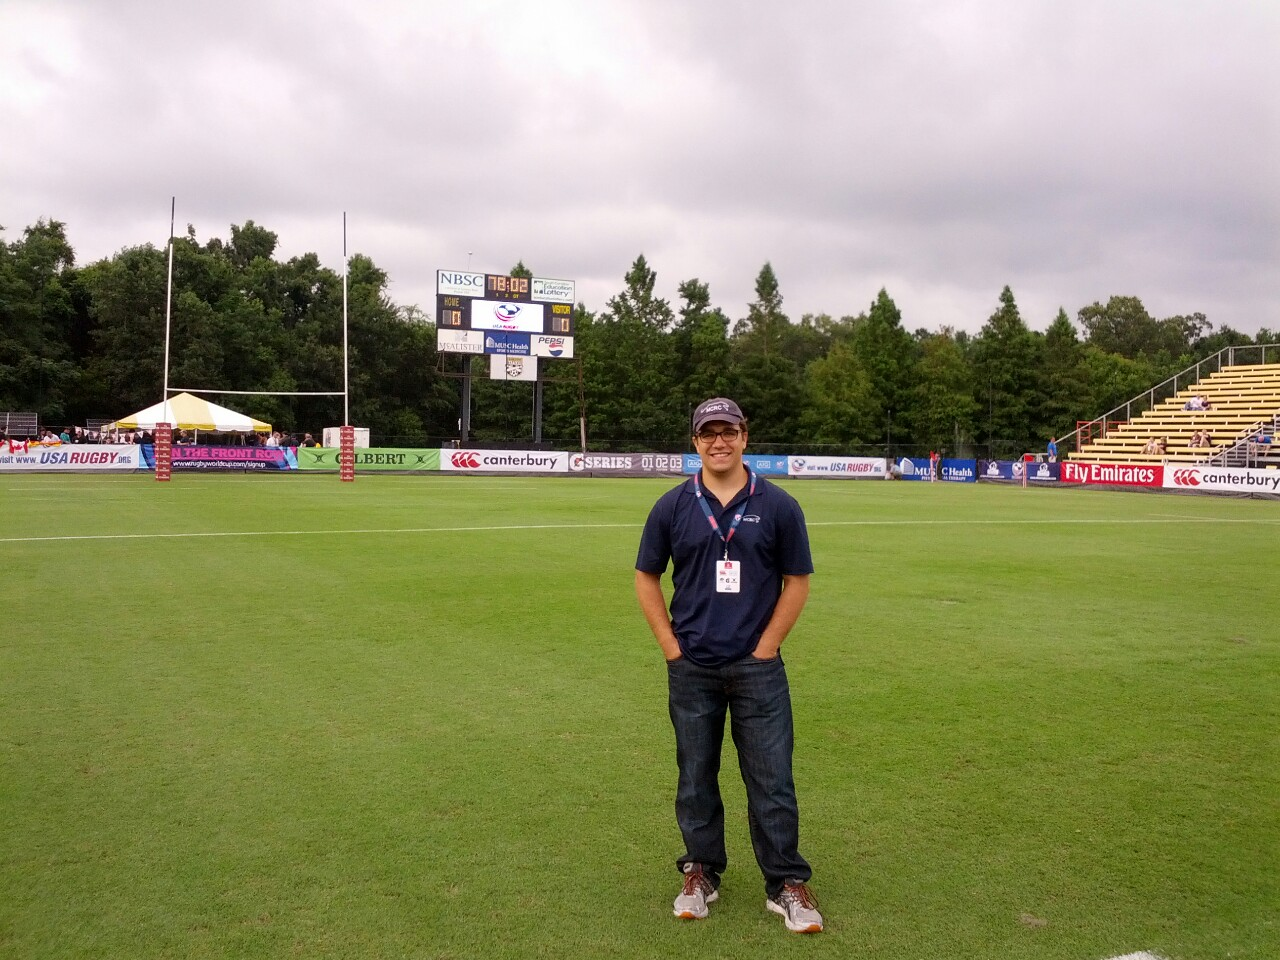 Chris Mutty '09.5 at the USA Rugby high performance referee development camp and Eagles vs Canada test match